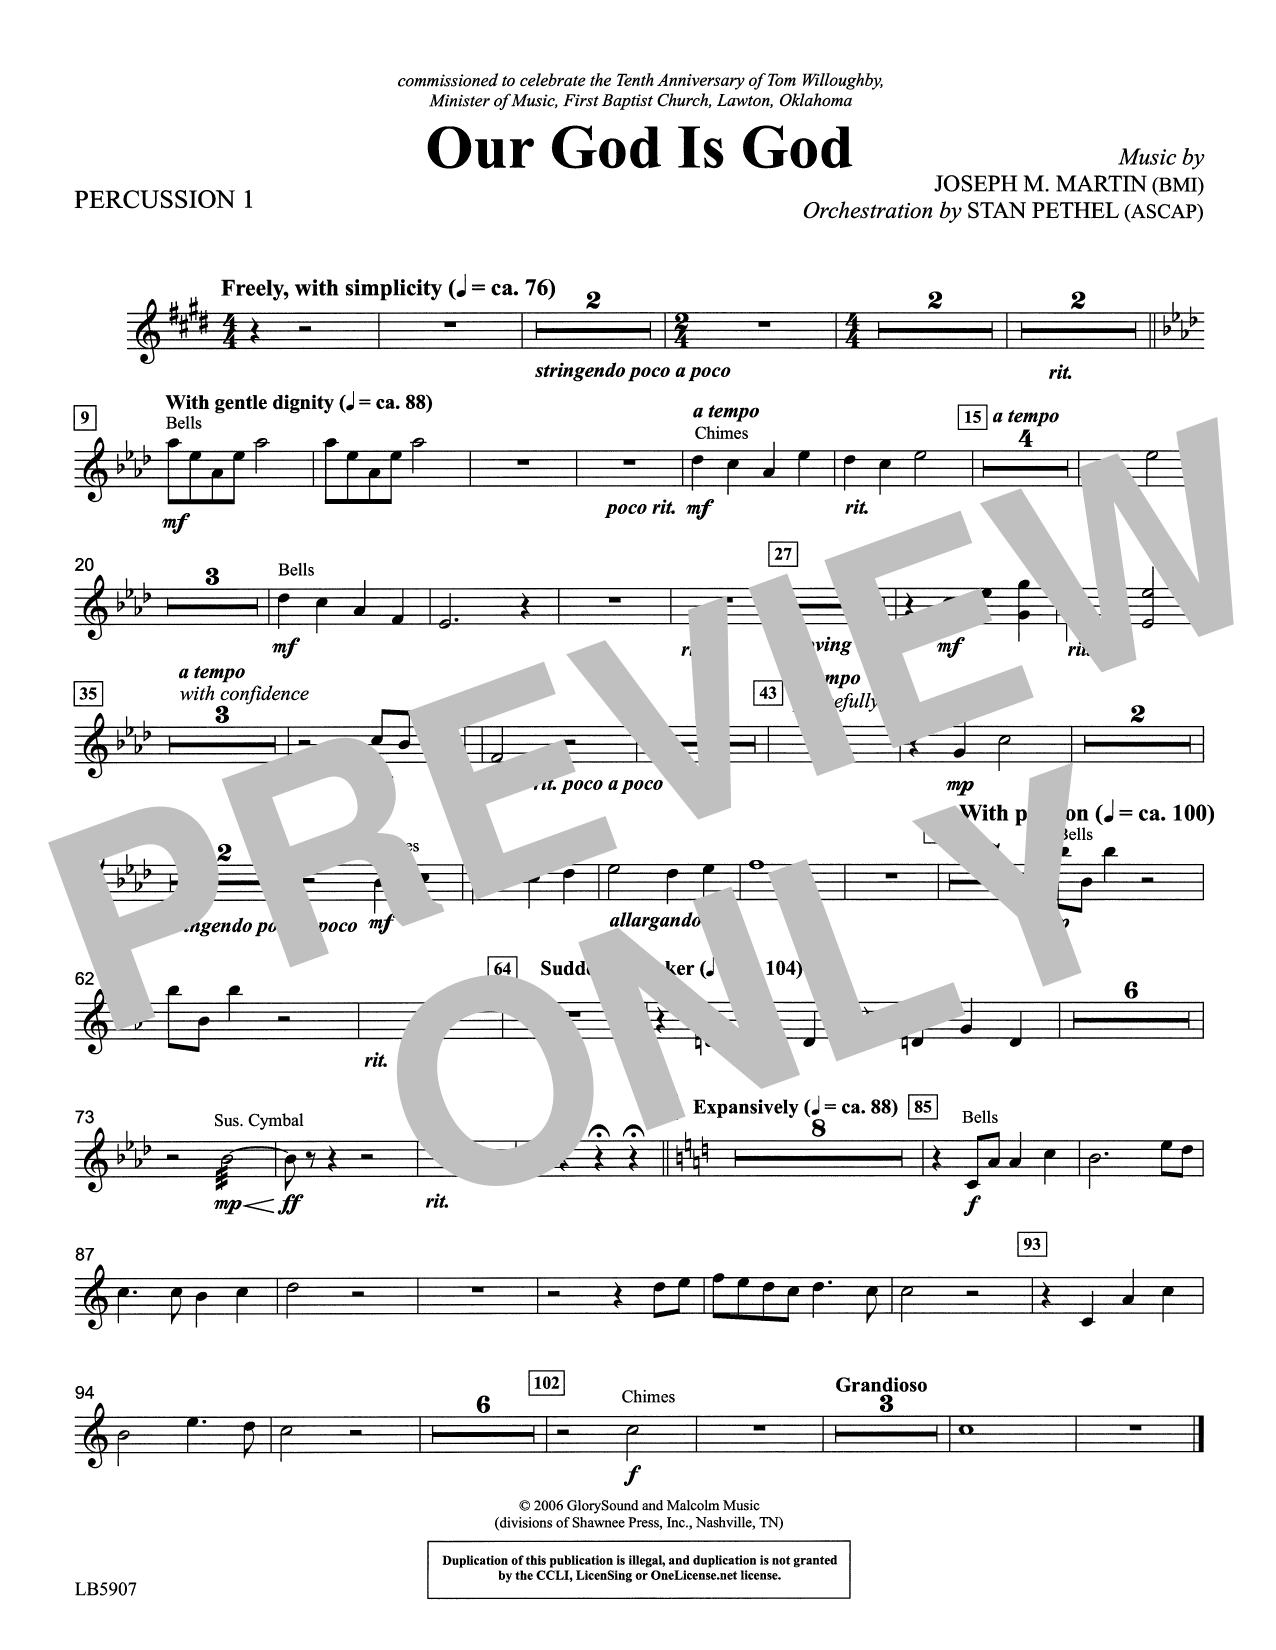 Our God Is God - Percussion 1 Sheet Music